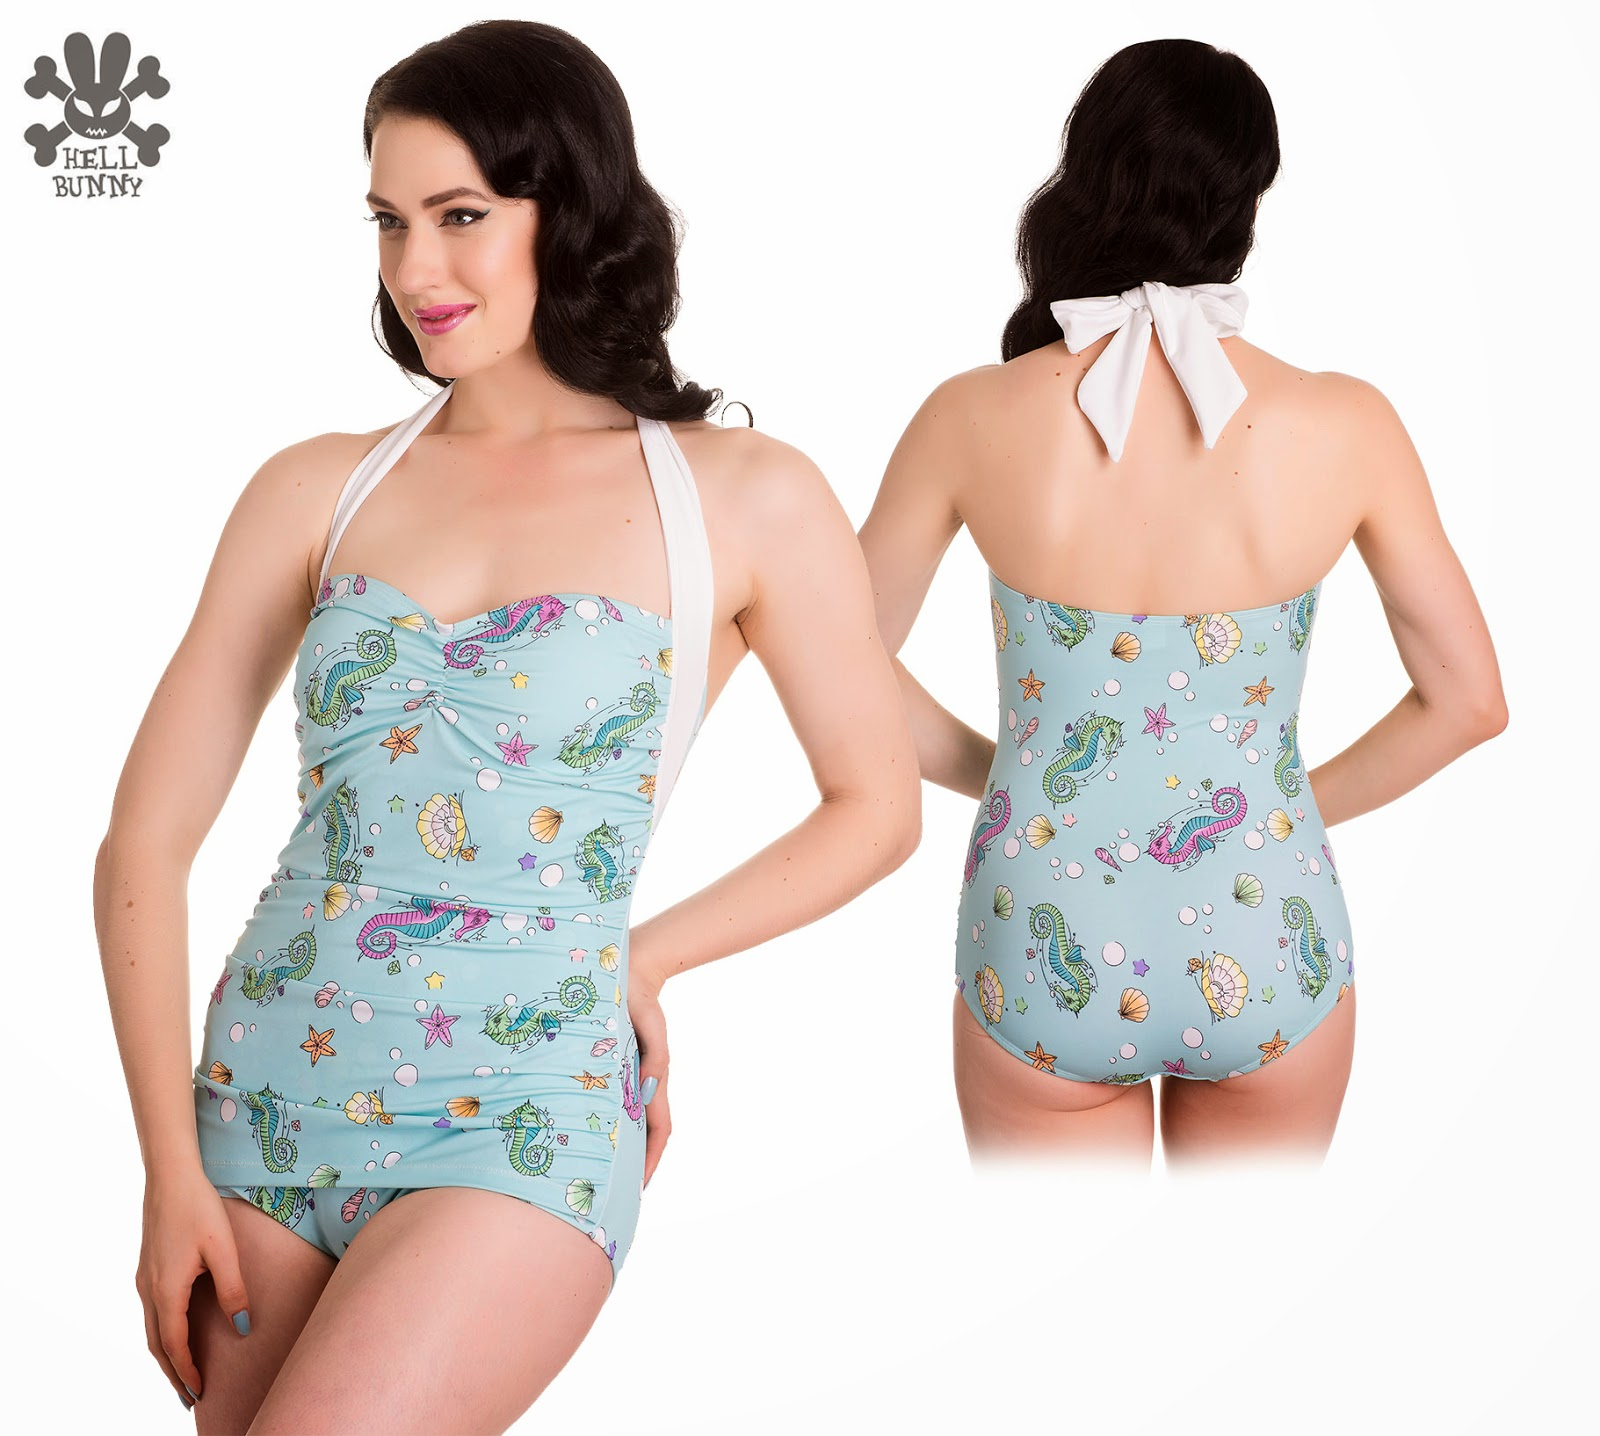 4a8d34eef7 Hell Bunny  Soak up the sun in new Hell Bunny Swimwear this summer!